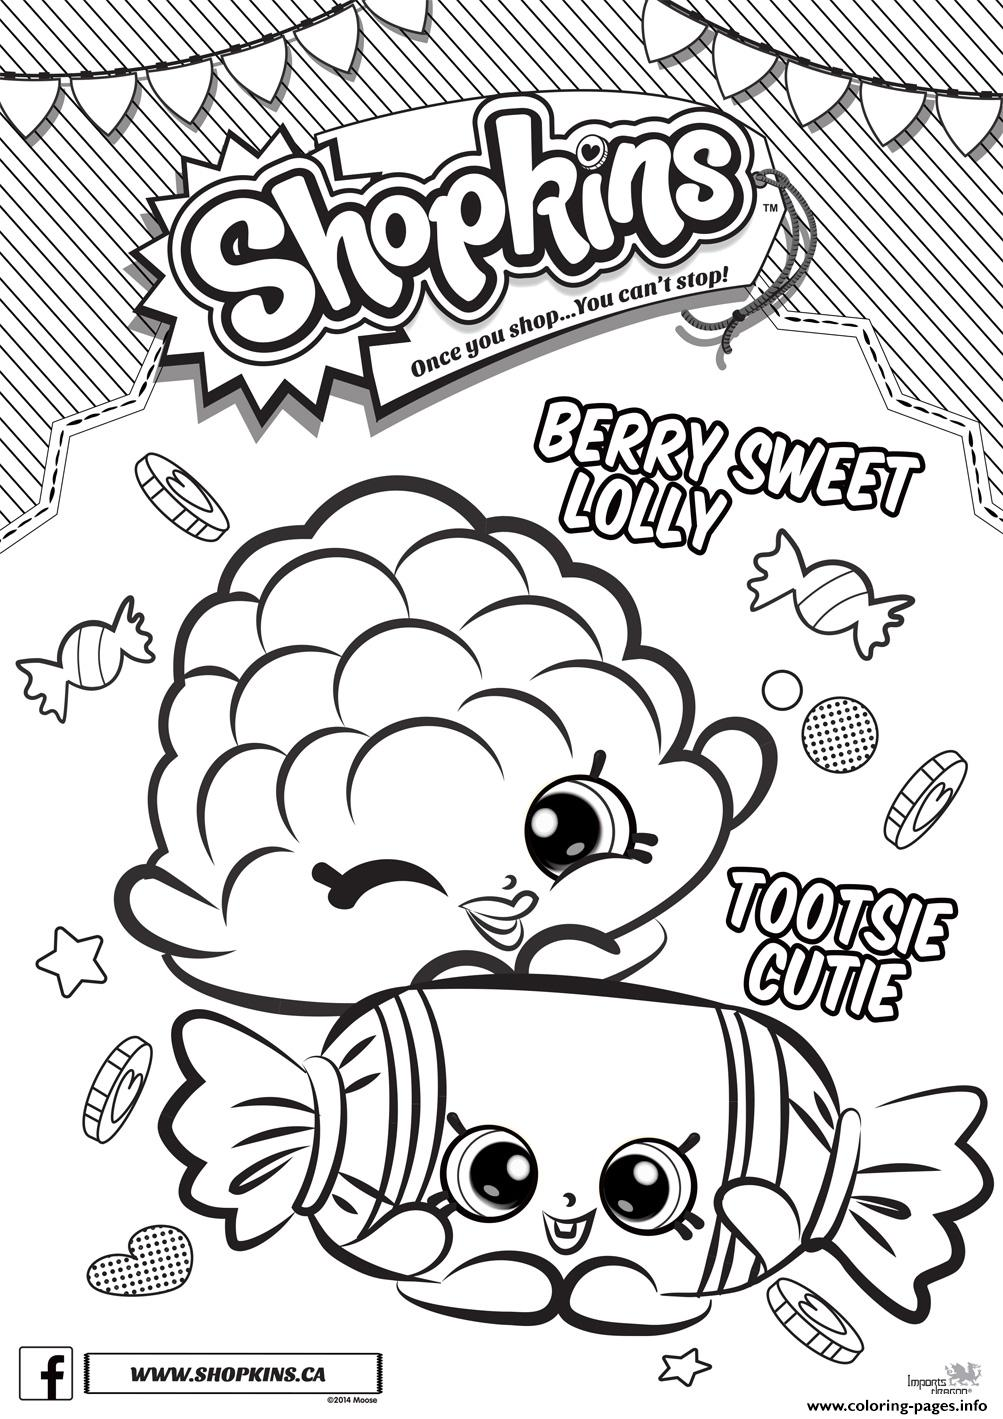 Shopkins Berry Sweet Lolly Tootsie